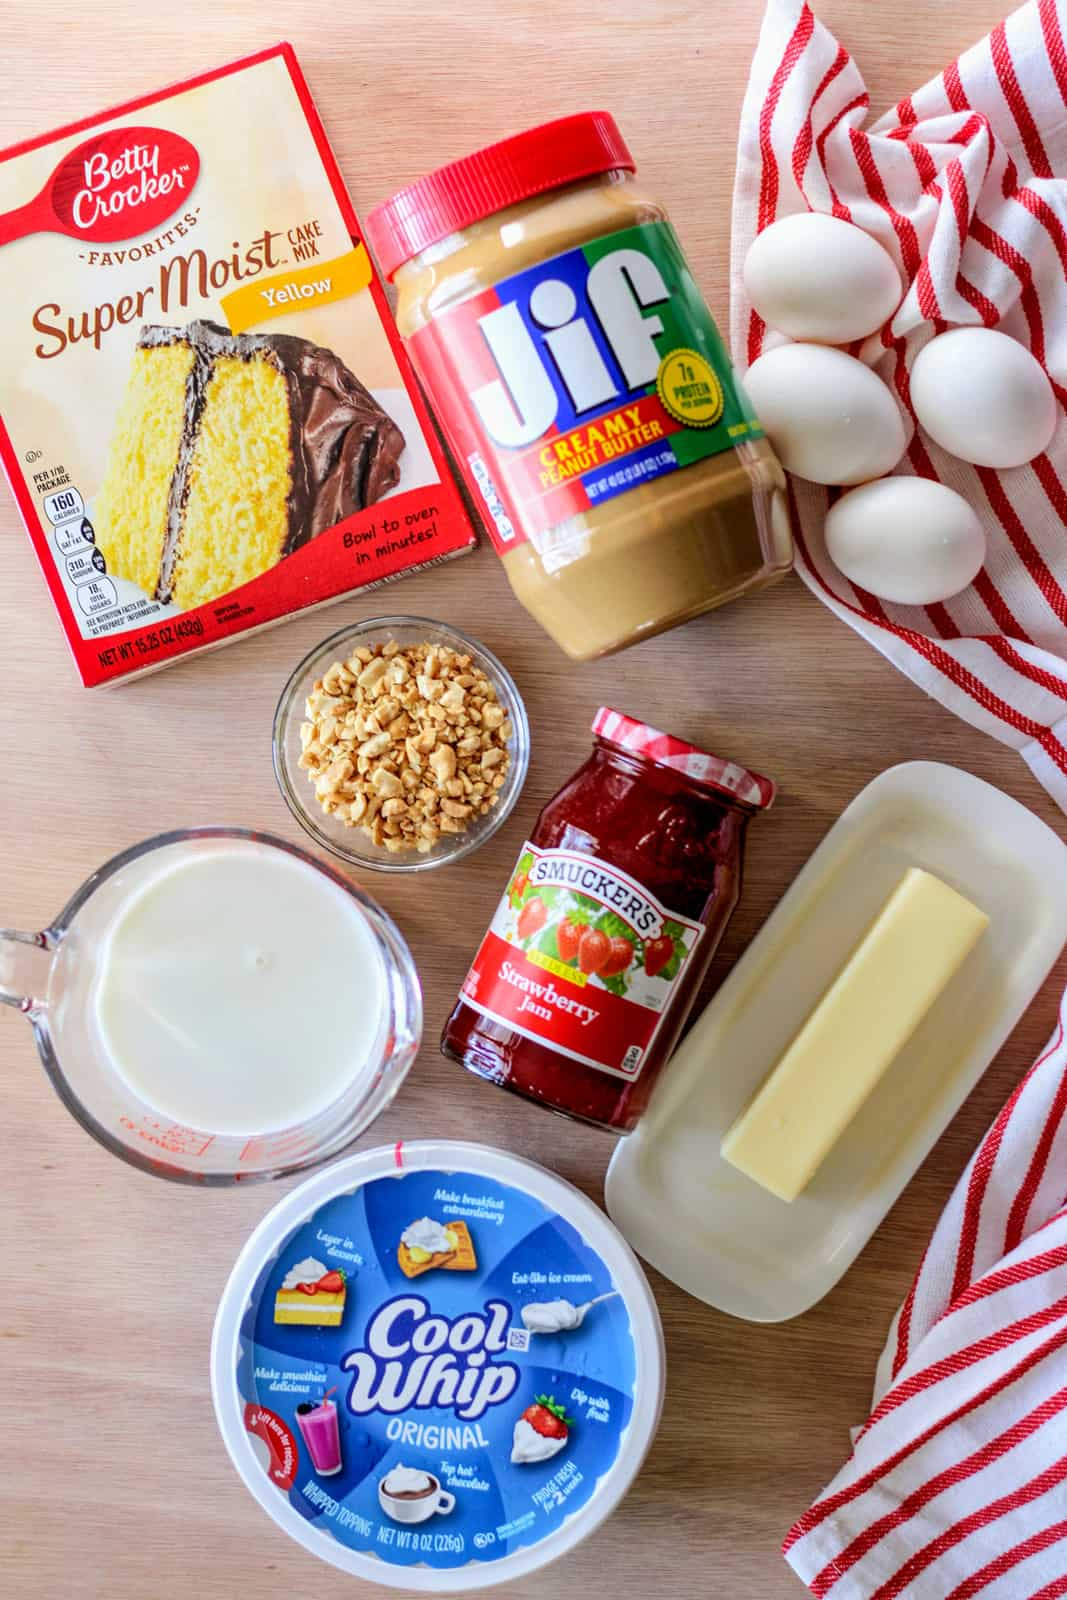 Ingredients needed to make a Peanut Butter and Jelly Poke Cake